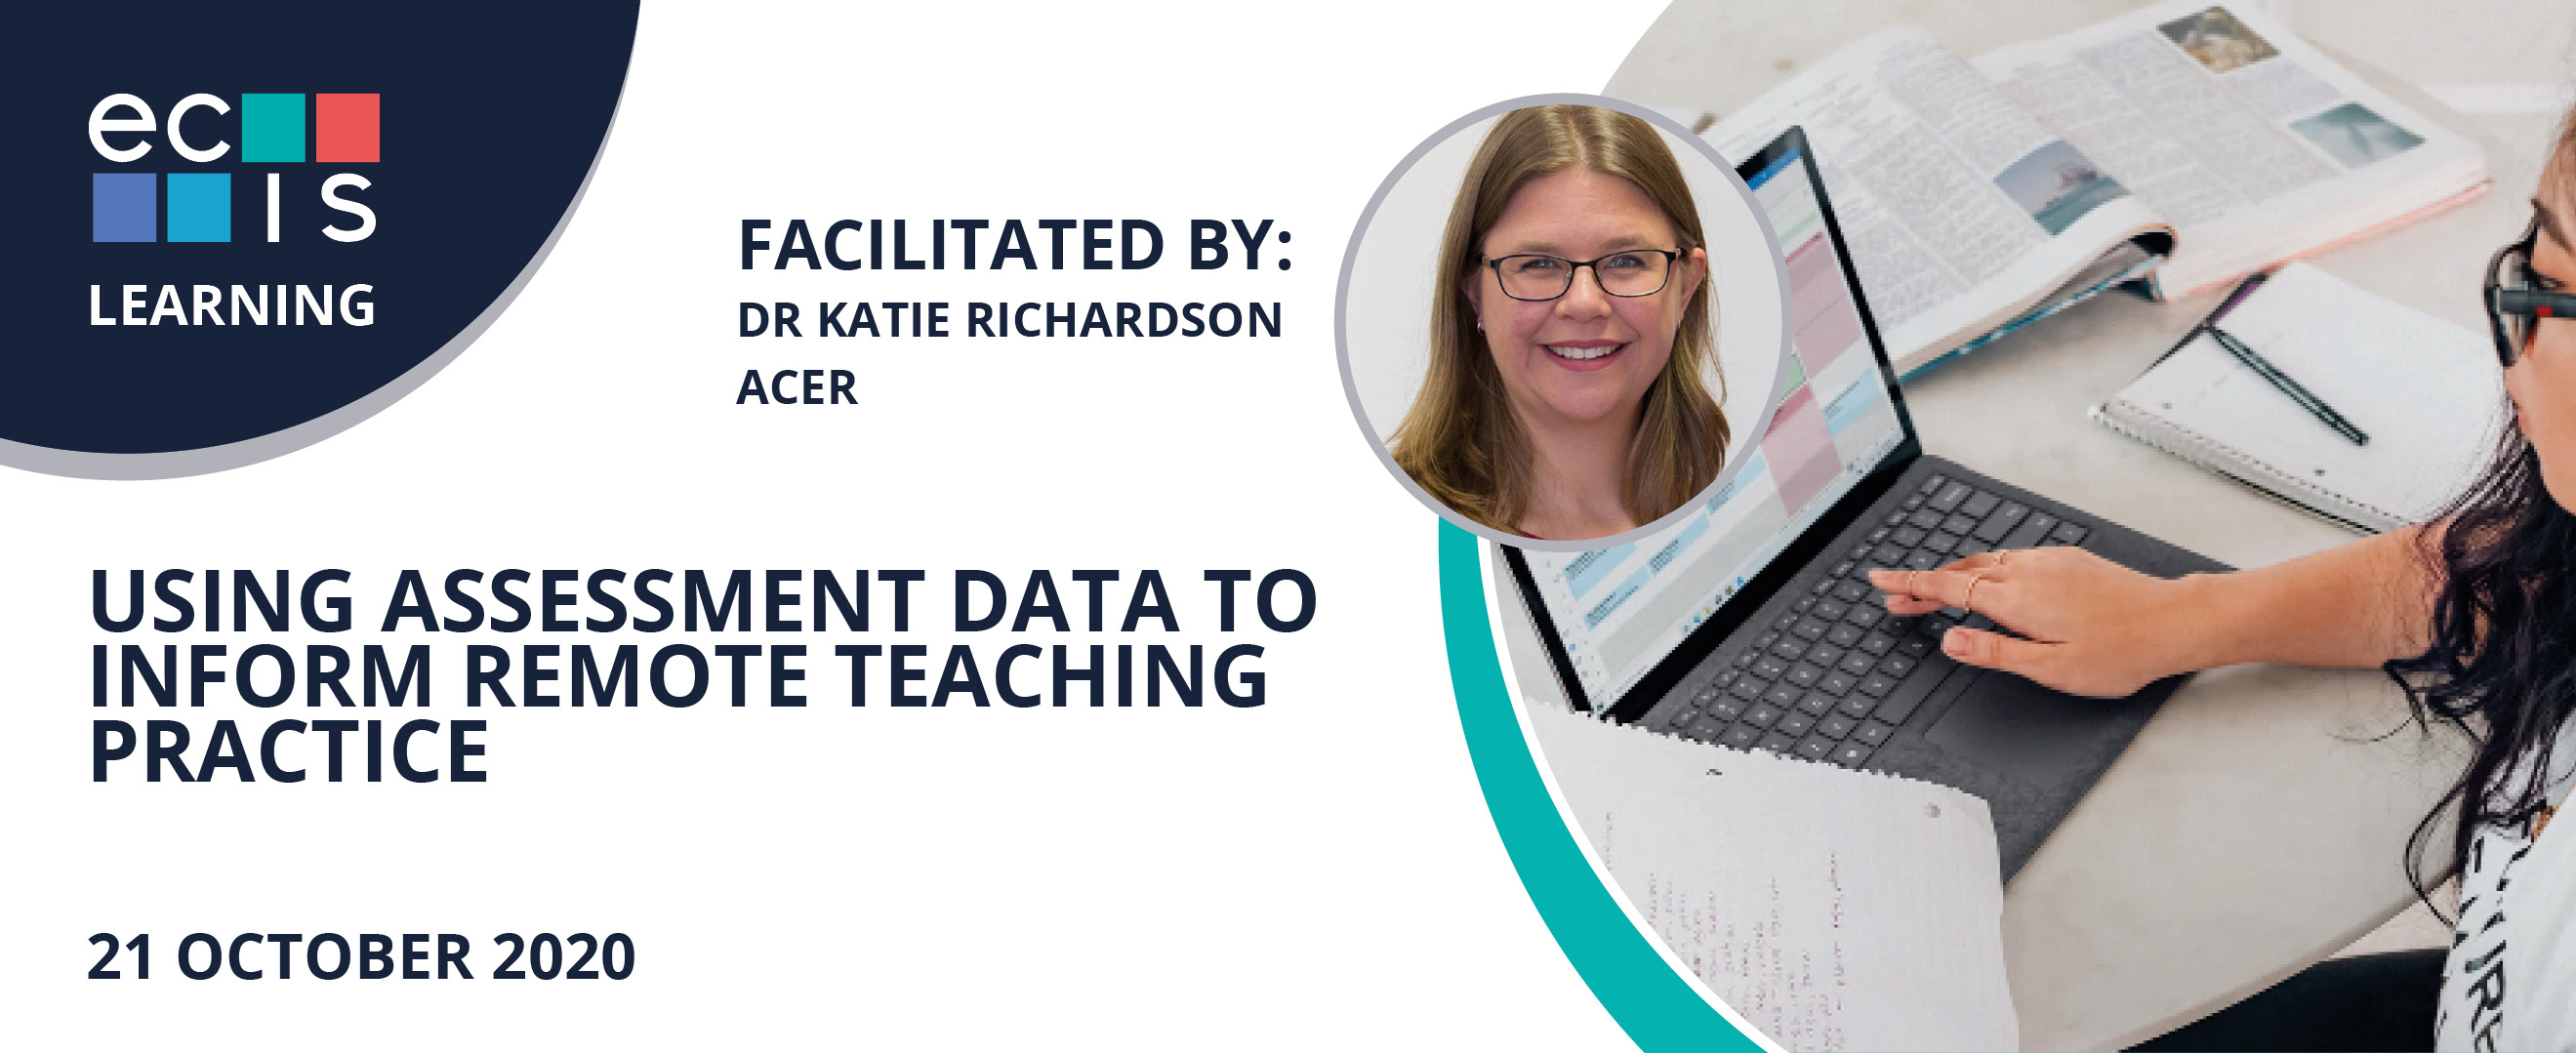 Webinar: ECIS/ACER Using assessment data to inform remote teaching practice